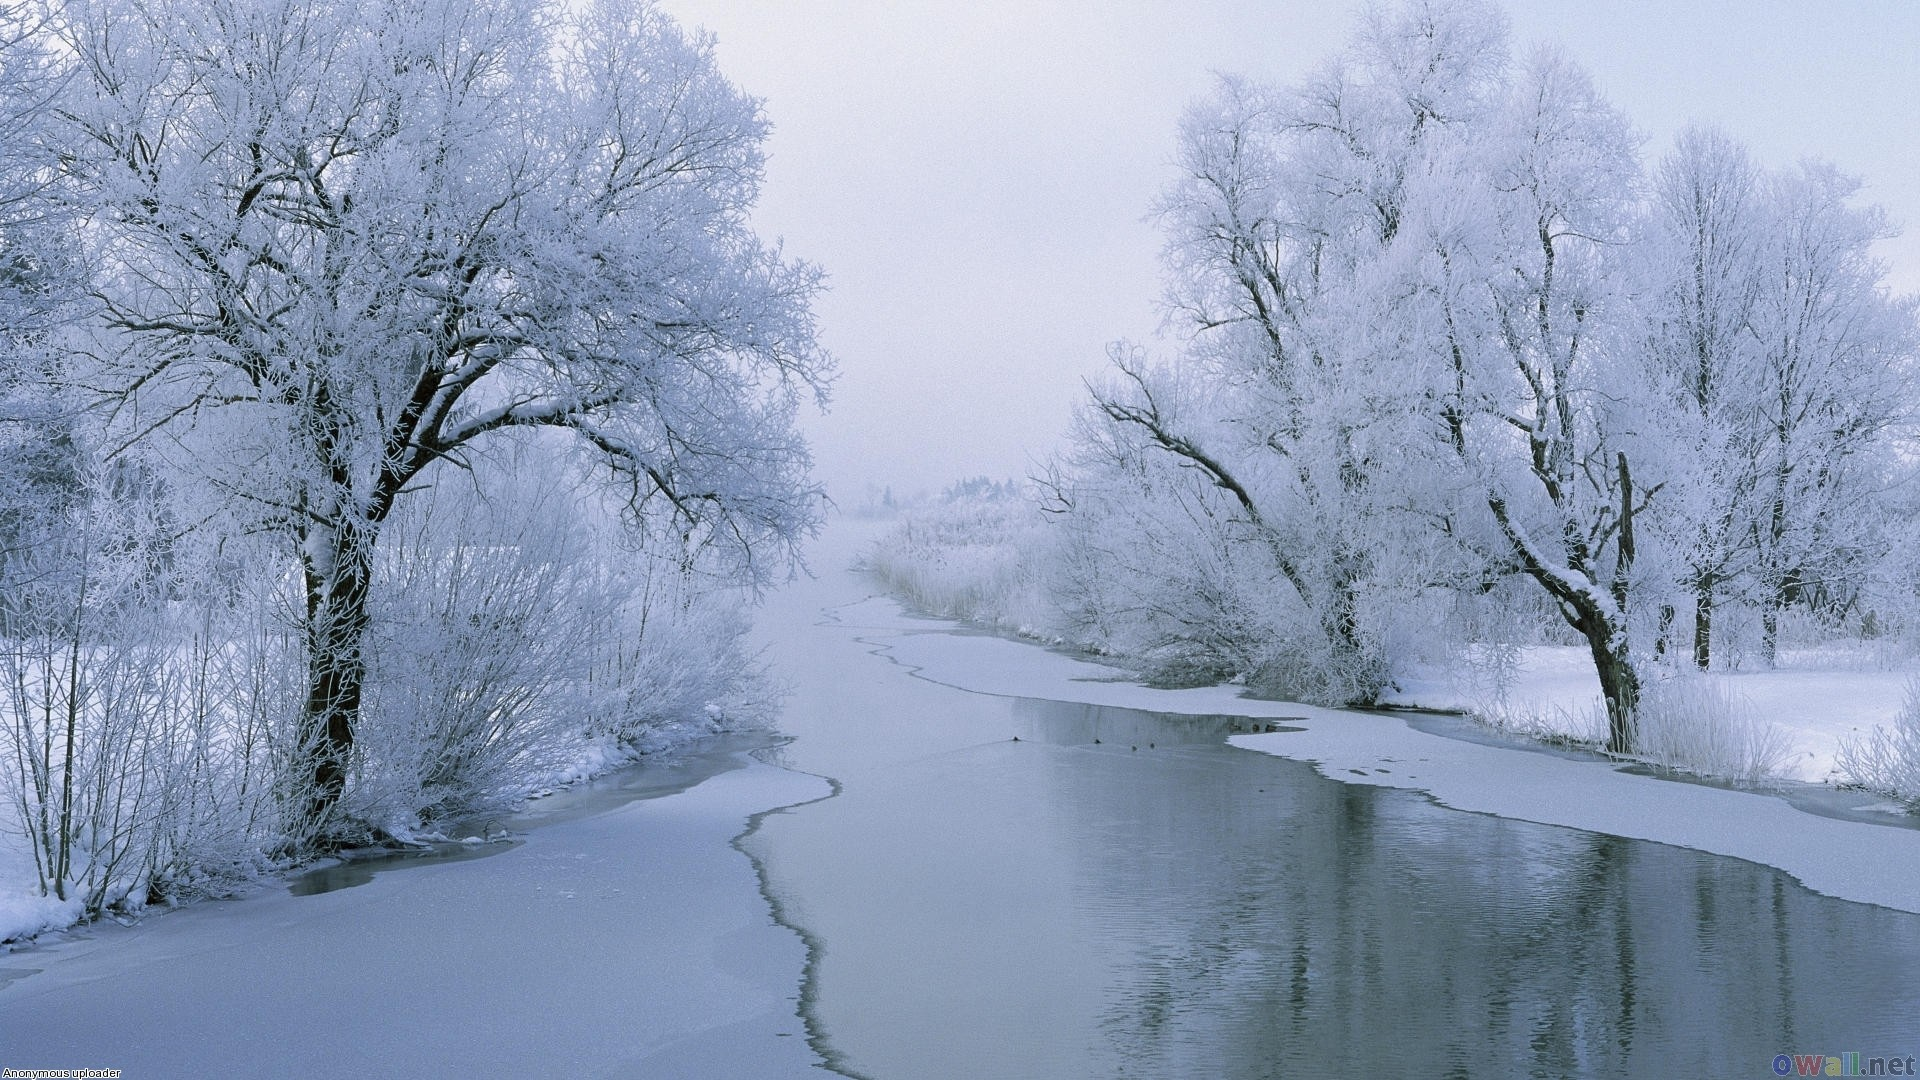 Winter-HD-Desktop-Backgrounds-Images-and-Pictures-wallpaper-wpc90010722